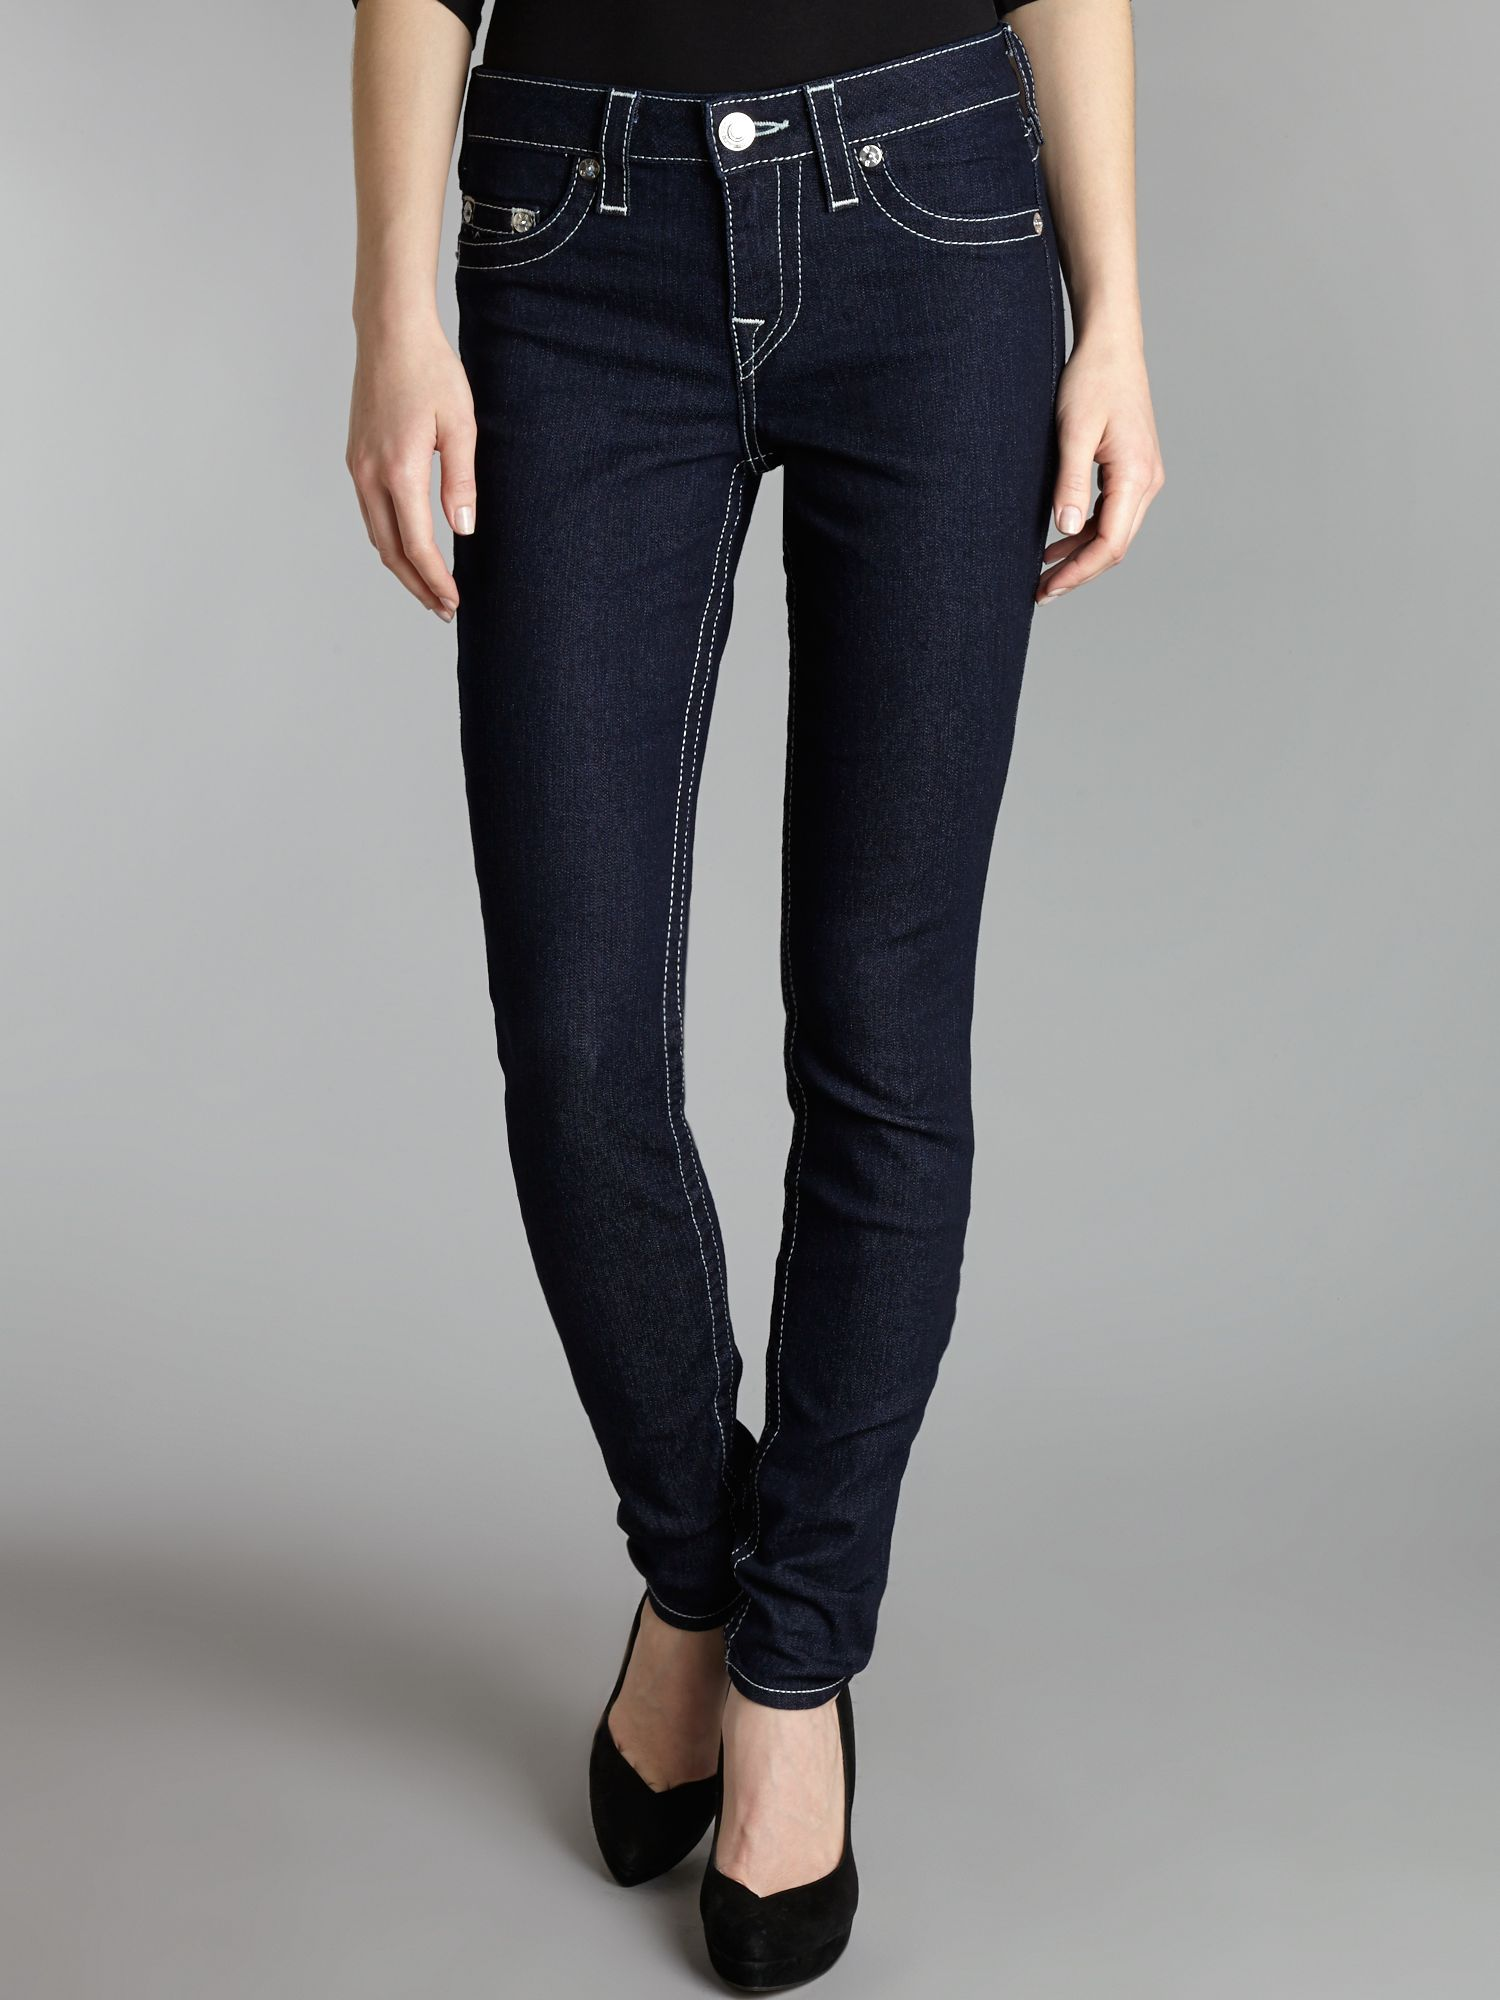 Halle skinny jeggings in Body Rinse